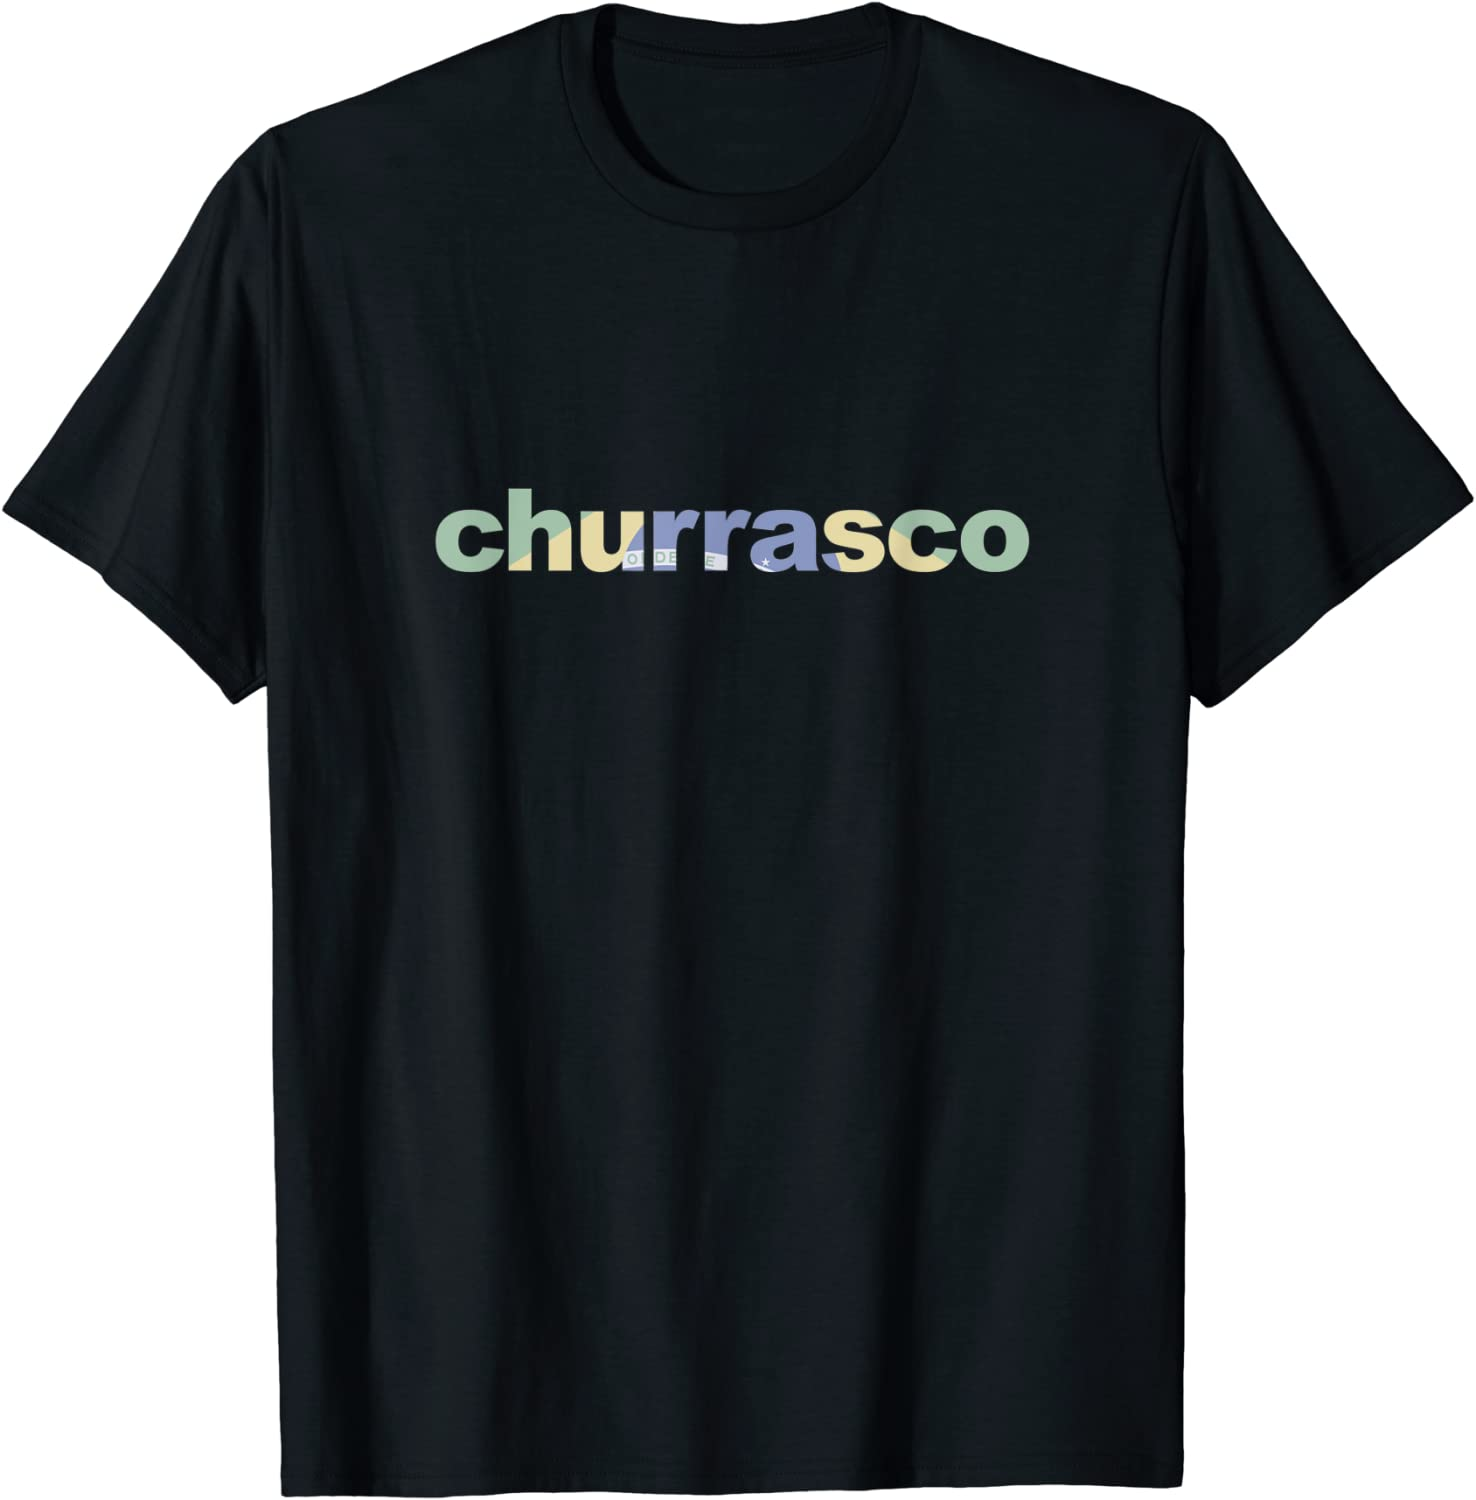 Churrasco - brazilian food gifts for family T-Shirt